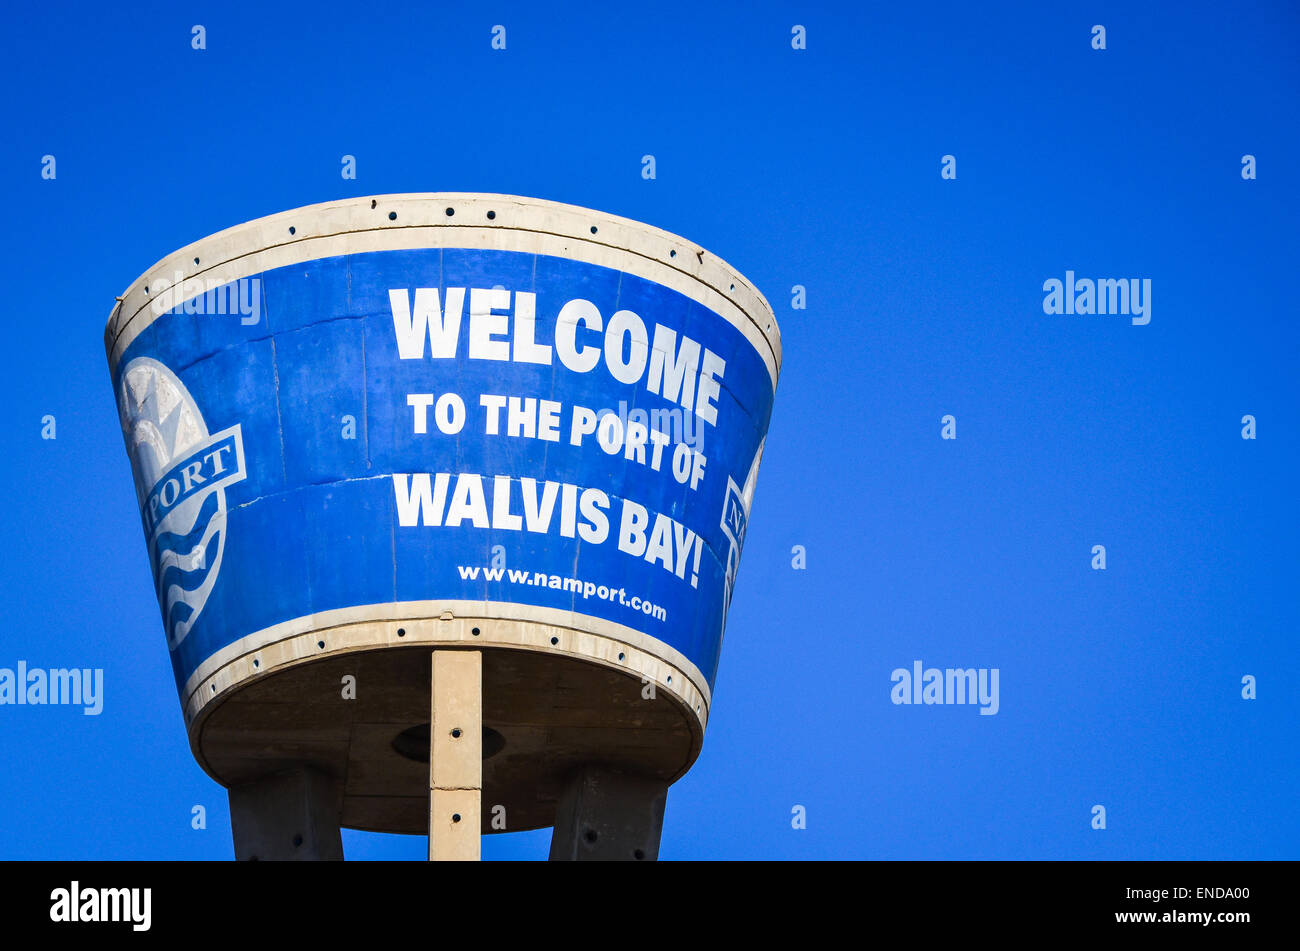 Water tower at the port of Walvis Bay, Namibia, reading 'welcome to the port of Walvis Bay' - Stock Image